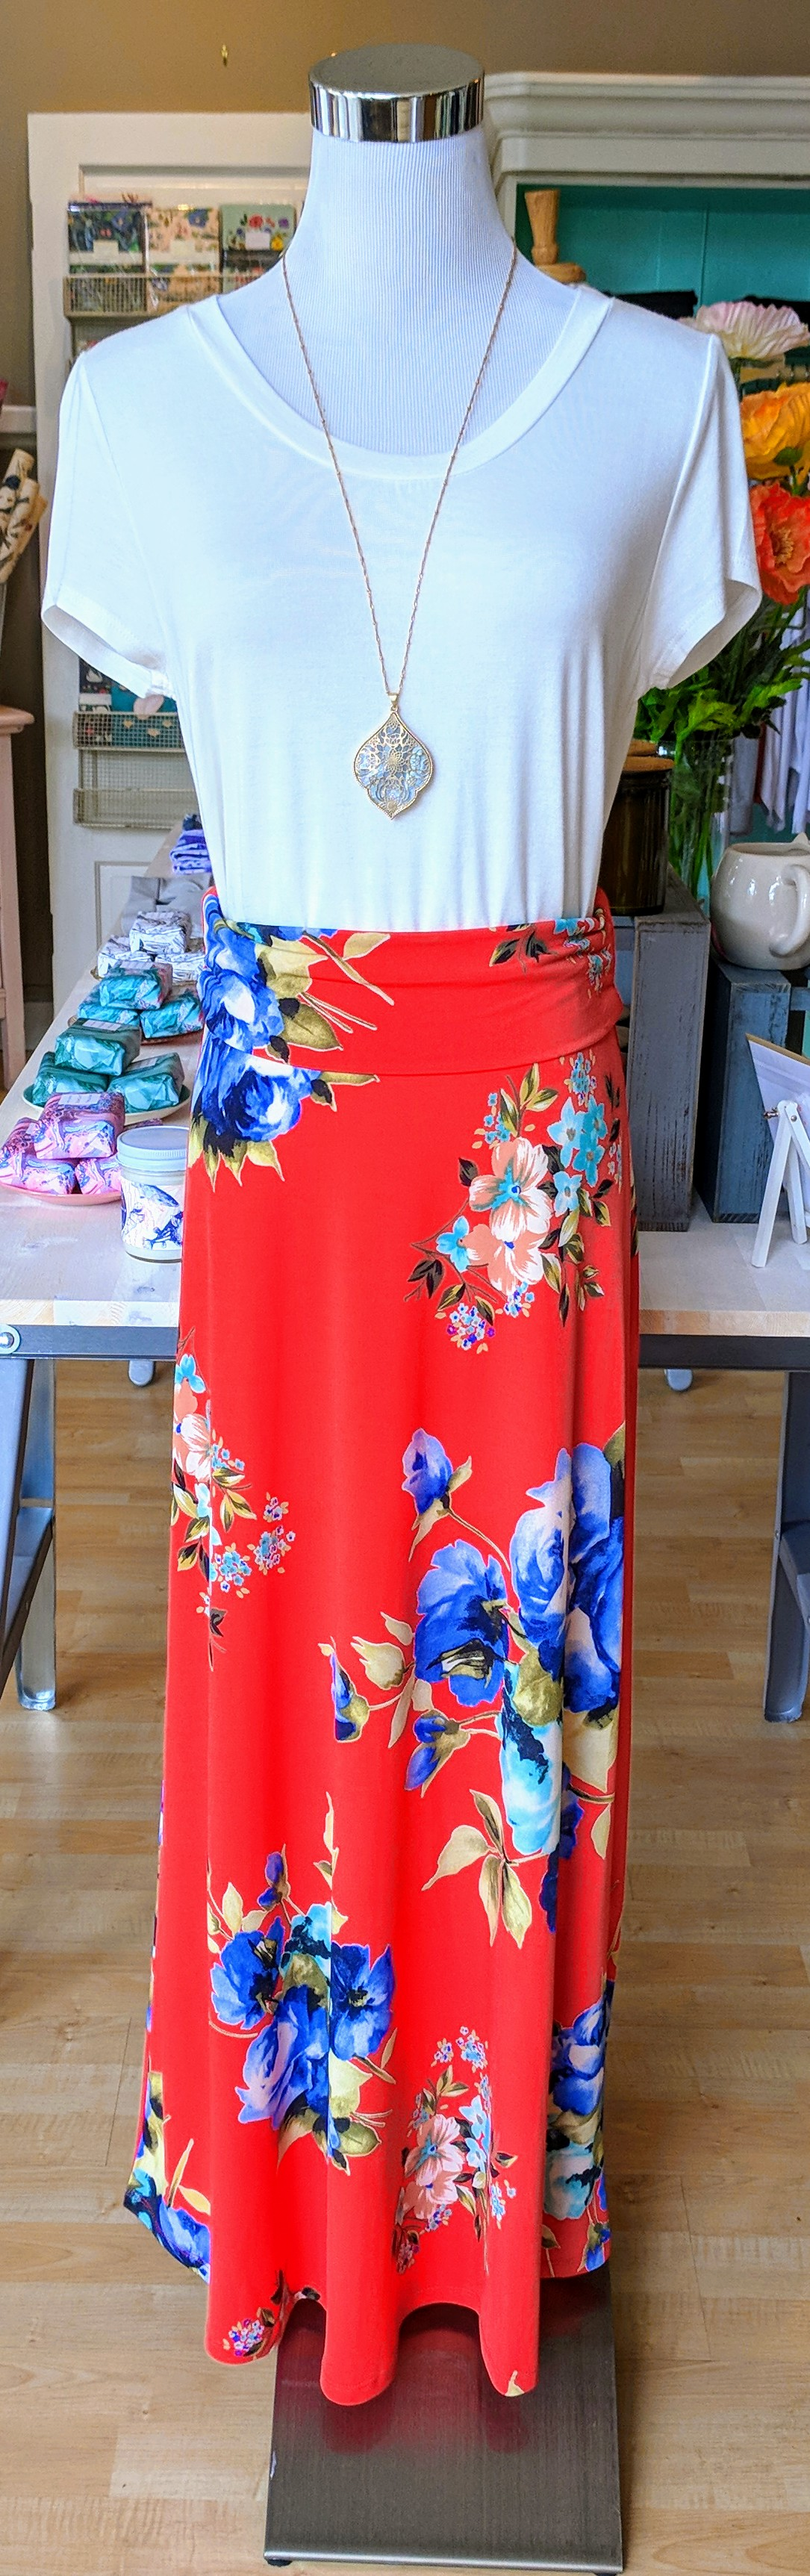 Coral floral maxi skirt with elastic waistband